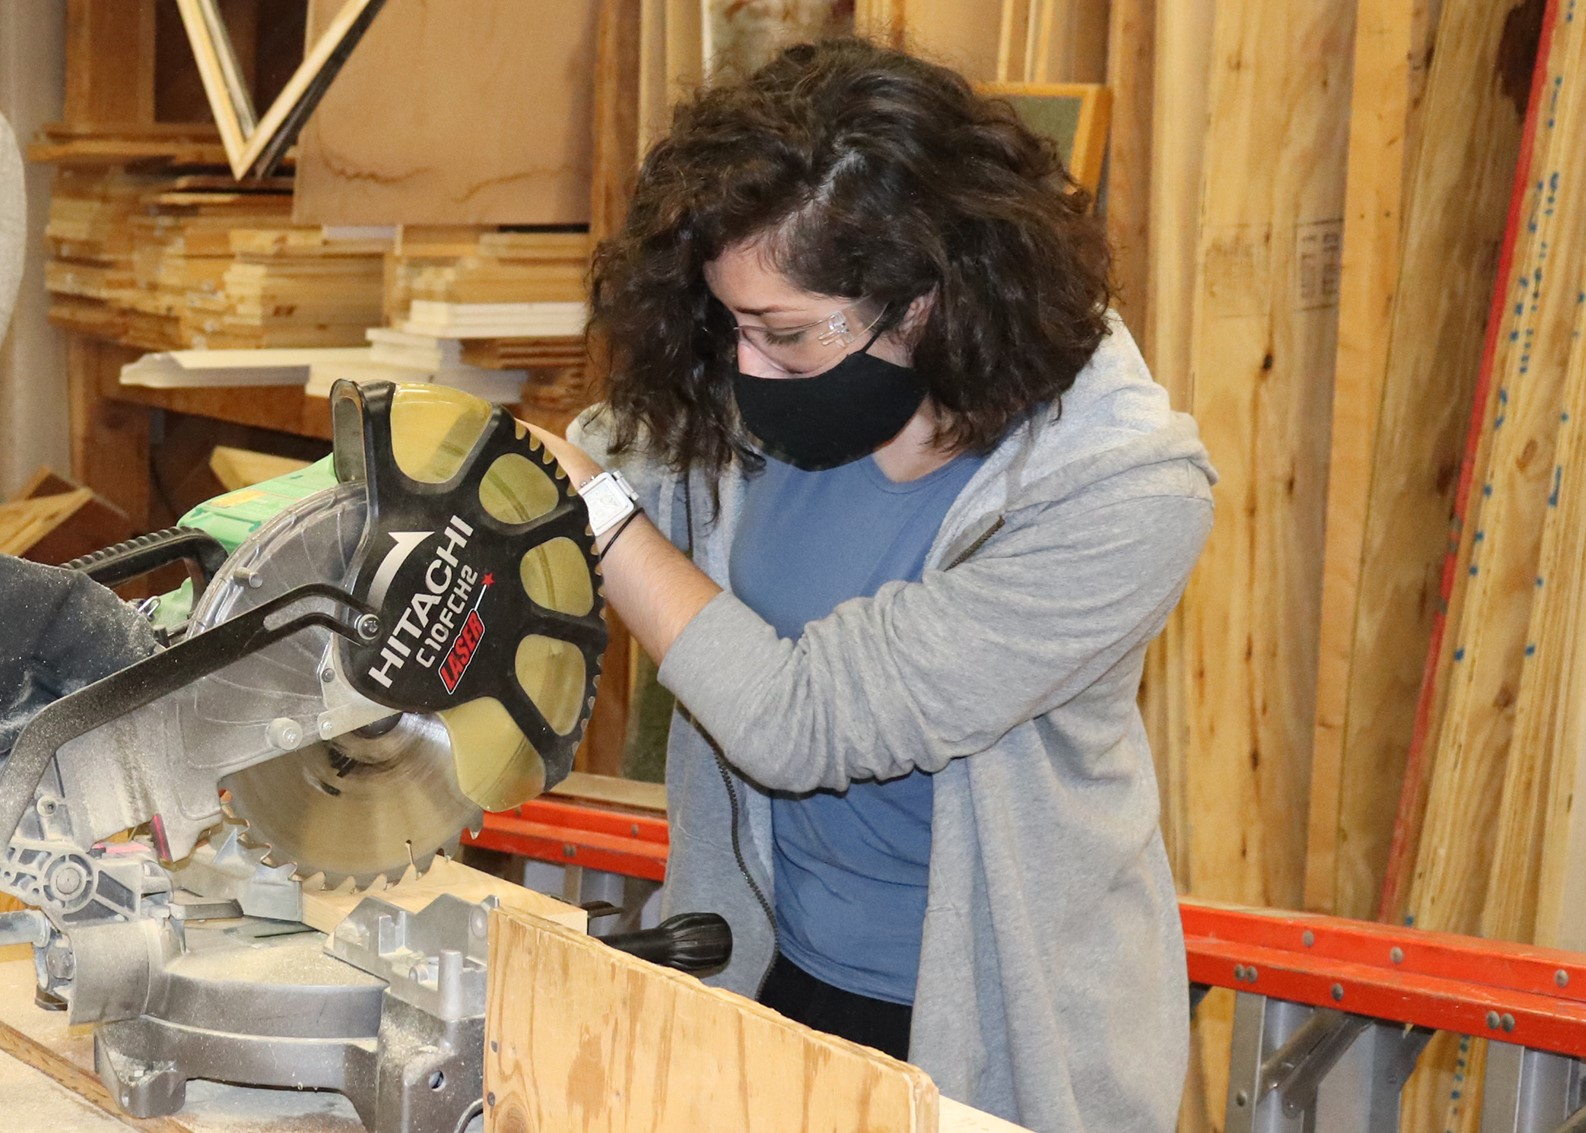 Student Isabel Tribunella. wearing protective eyewear and a face mask, uses a miter saw to cut through a board in a Capital Region BOCES Building Trades classroom.